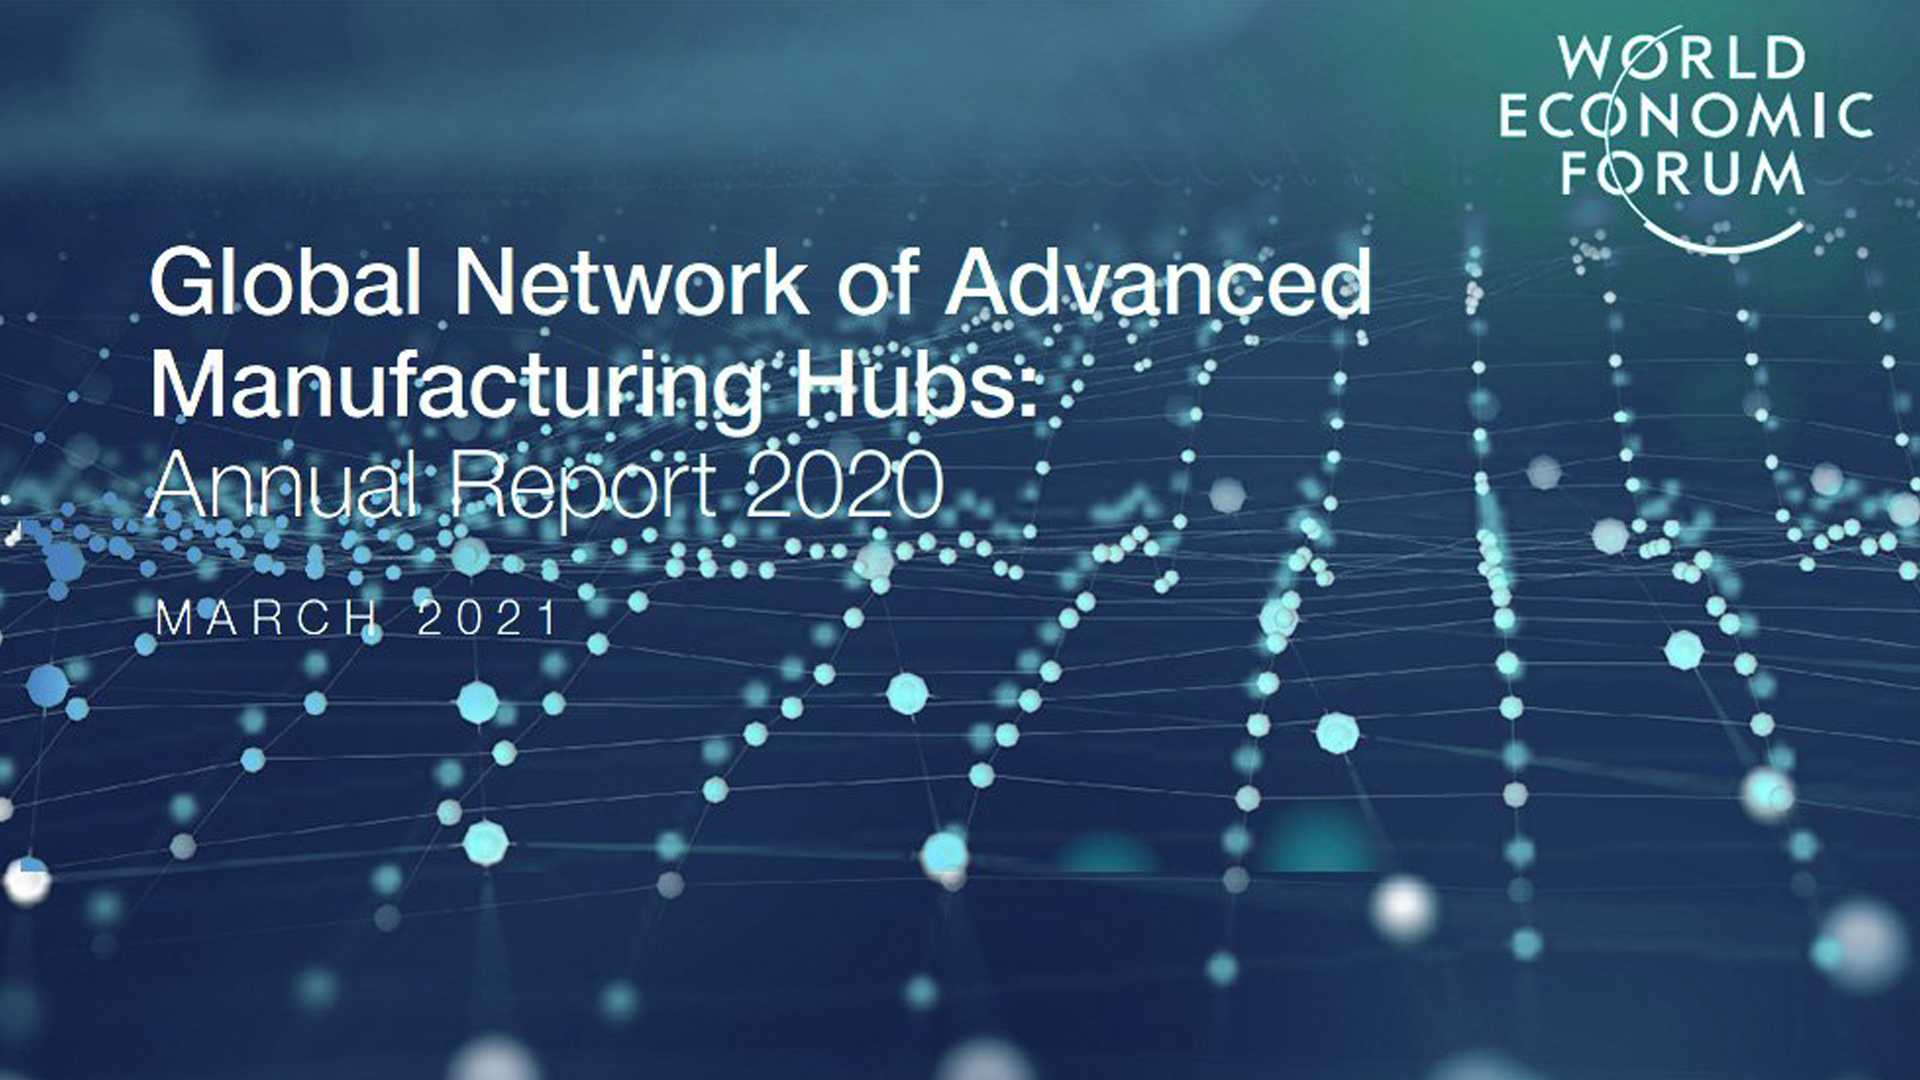 Automation Alley is a noted contributor to the World Economic Forum's newly-released 2020 AMHUB Annual Report